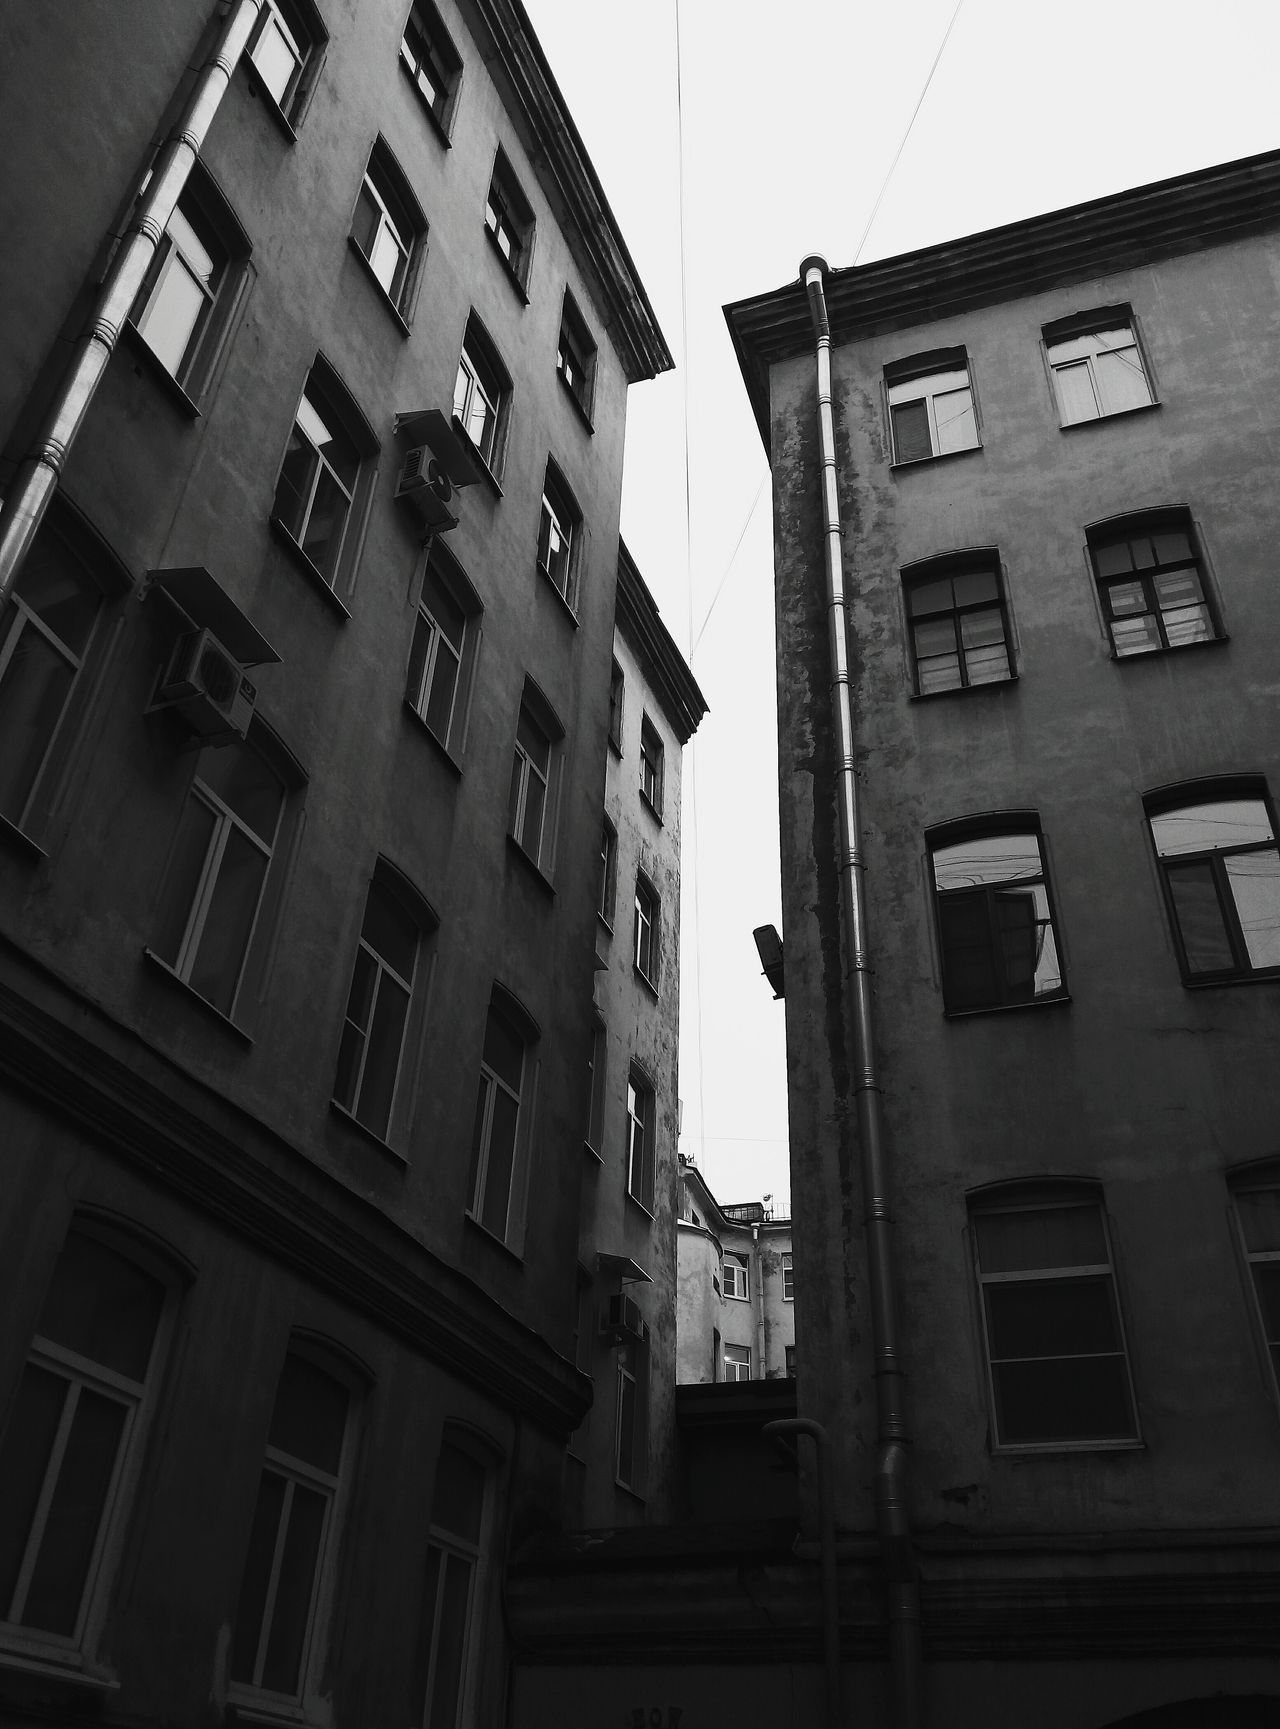 City Day Architecture Outdoors No People Built Structure Building Exterior St Petersburg Dark Black And White Monochrome Black & White Beauty